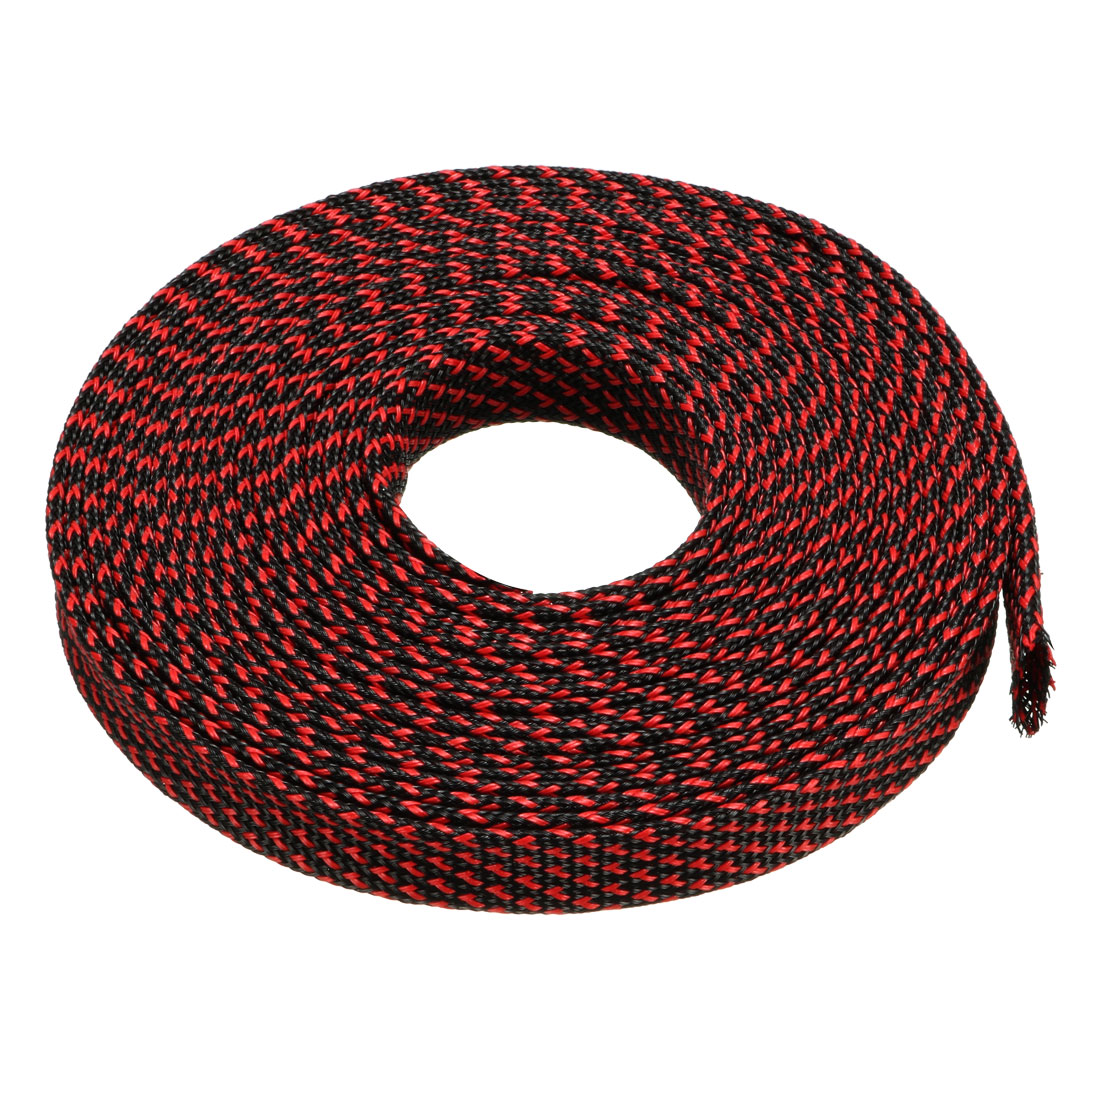 10mm Dia Tight Braided PET Expandable Sleeving Cable Wrap Sheath Black Red 16Ft